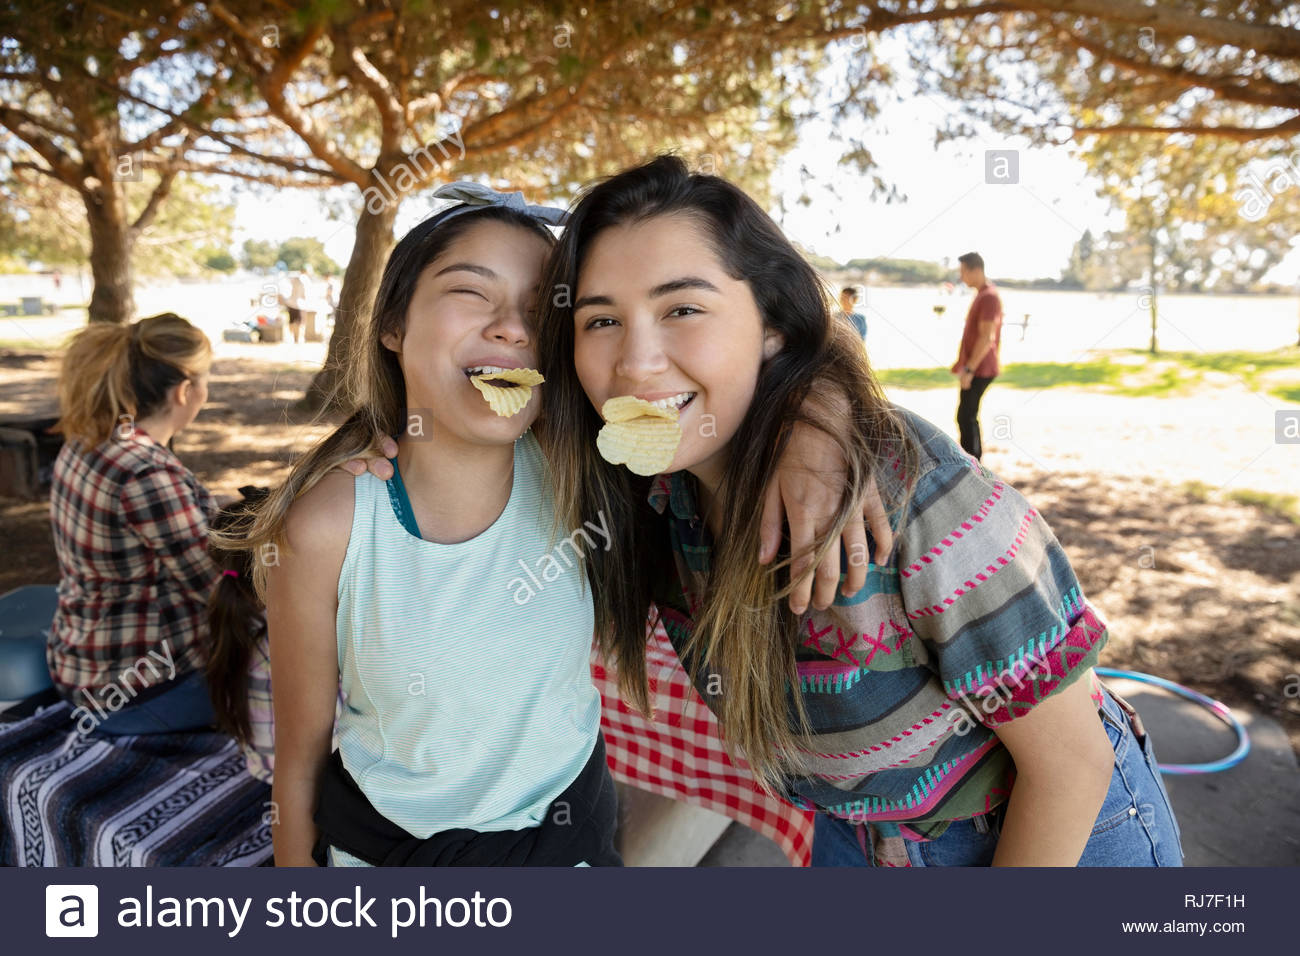 Portrait playful Latinx teenage girls making a face in park - Stock Image